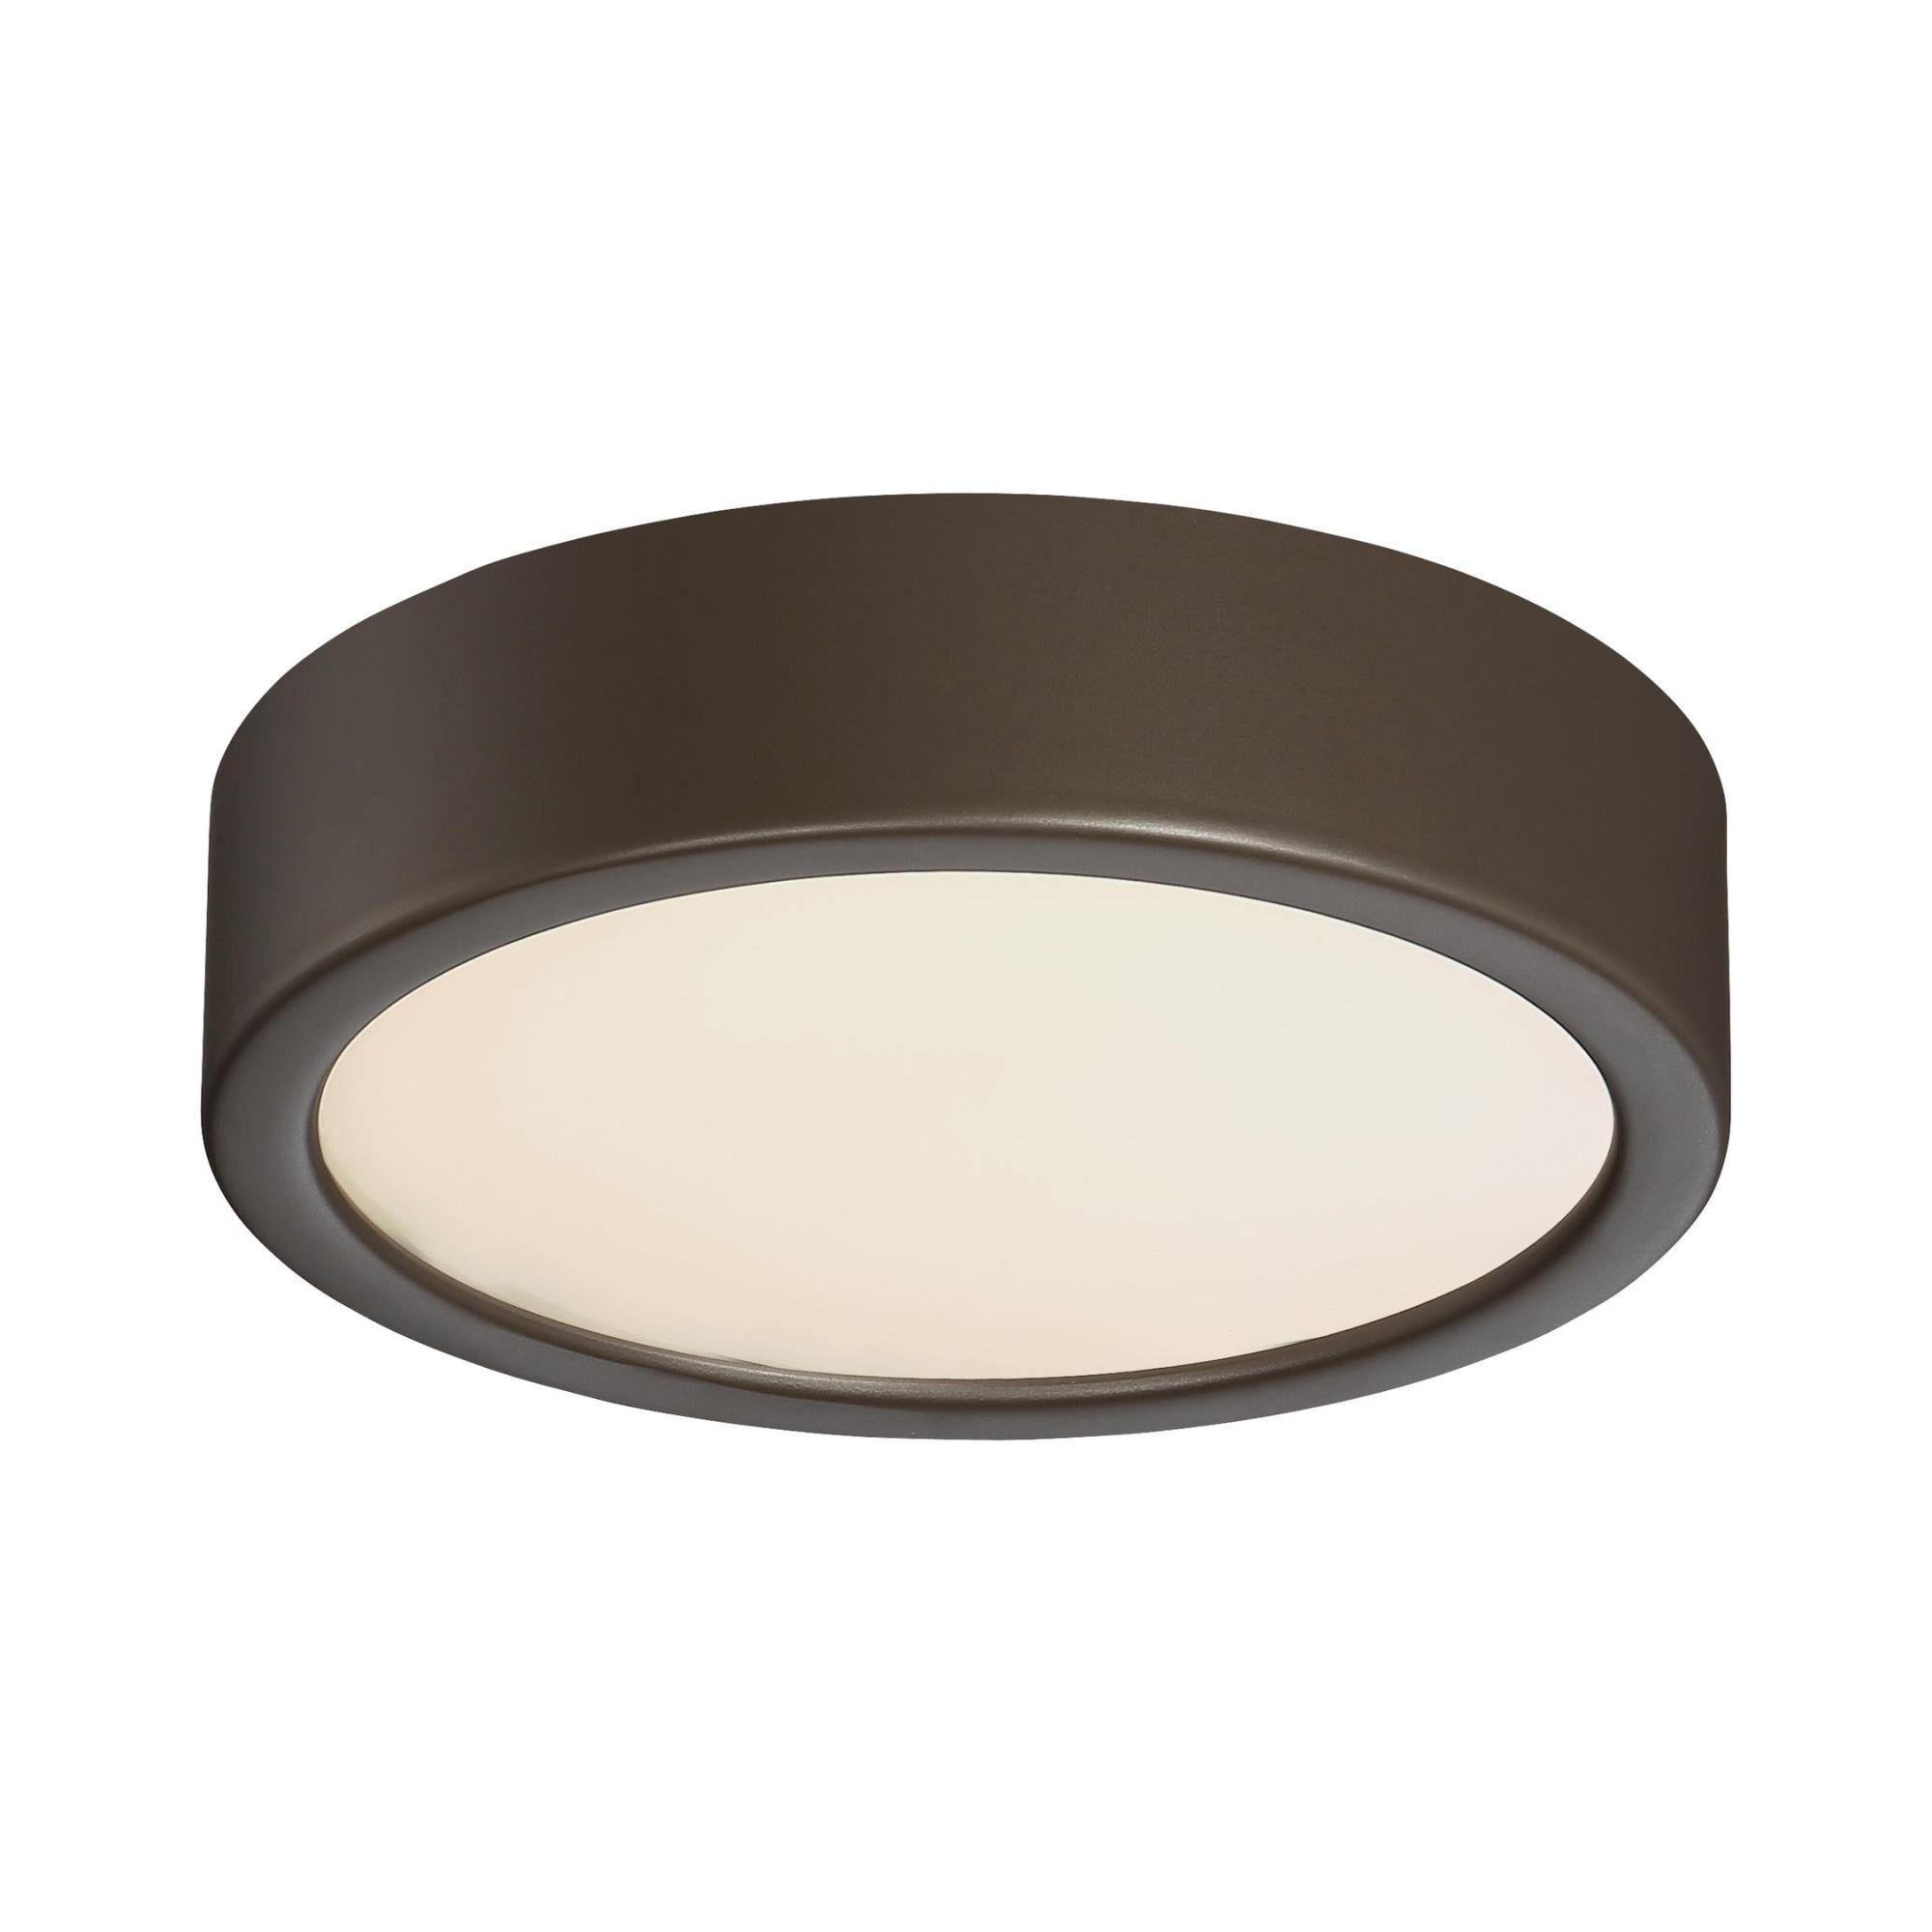 Kovacs 6 Inch 1 Light Led Flush Mount - P840-647b-l - Transitional